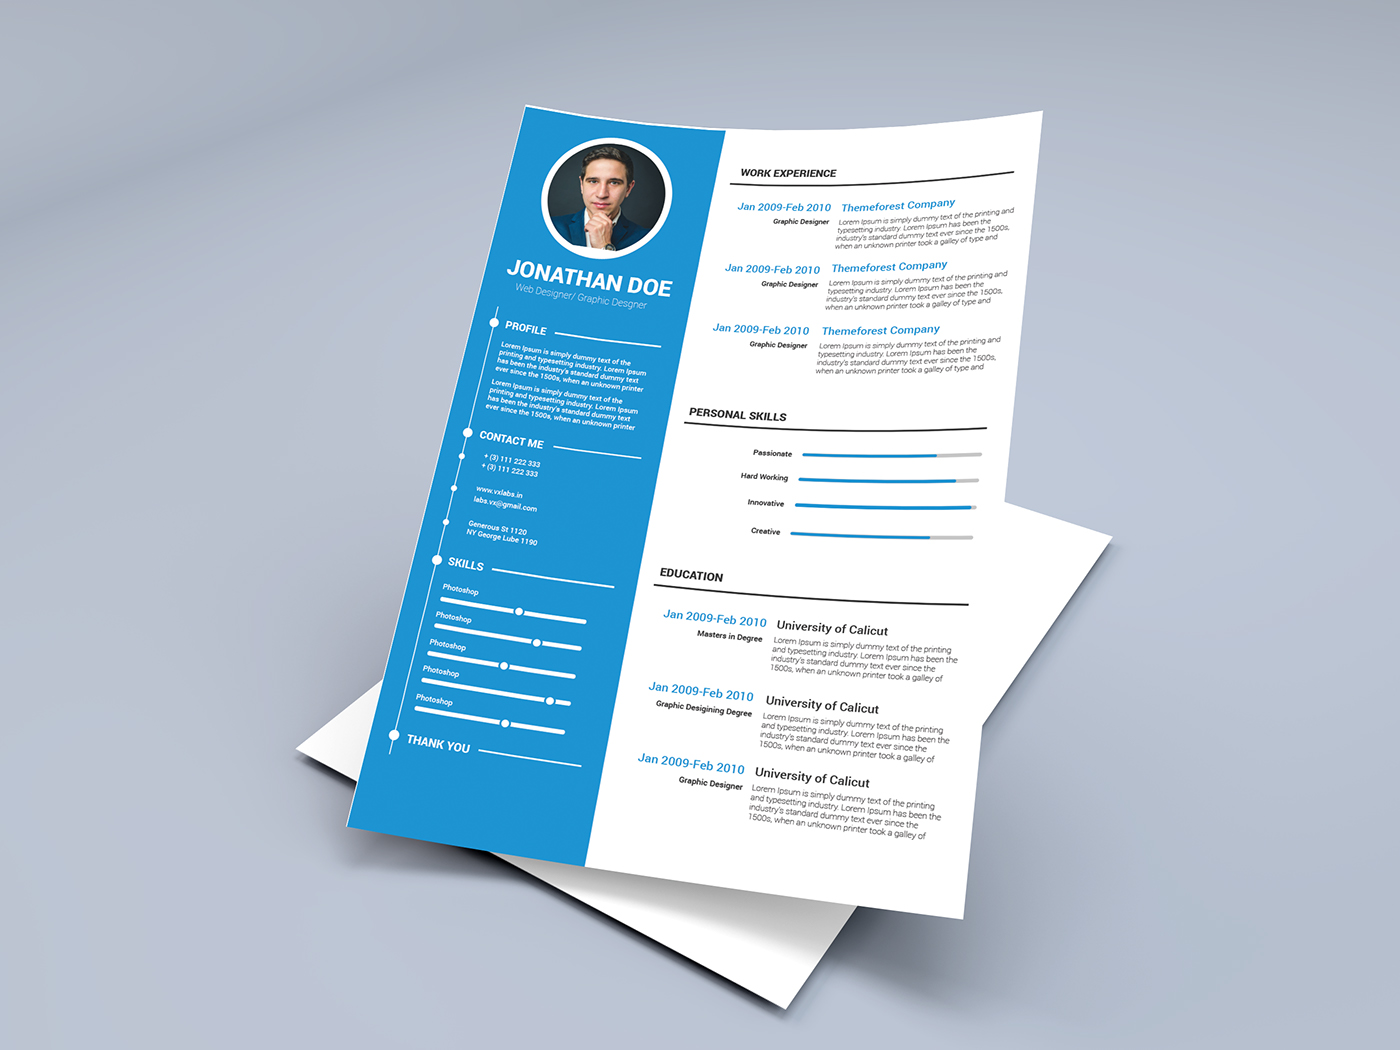 ms word resume templates  2019 list of 10  templates  free